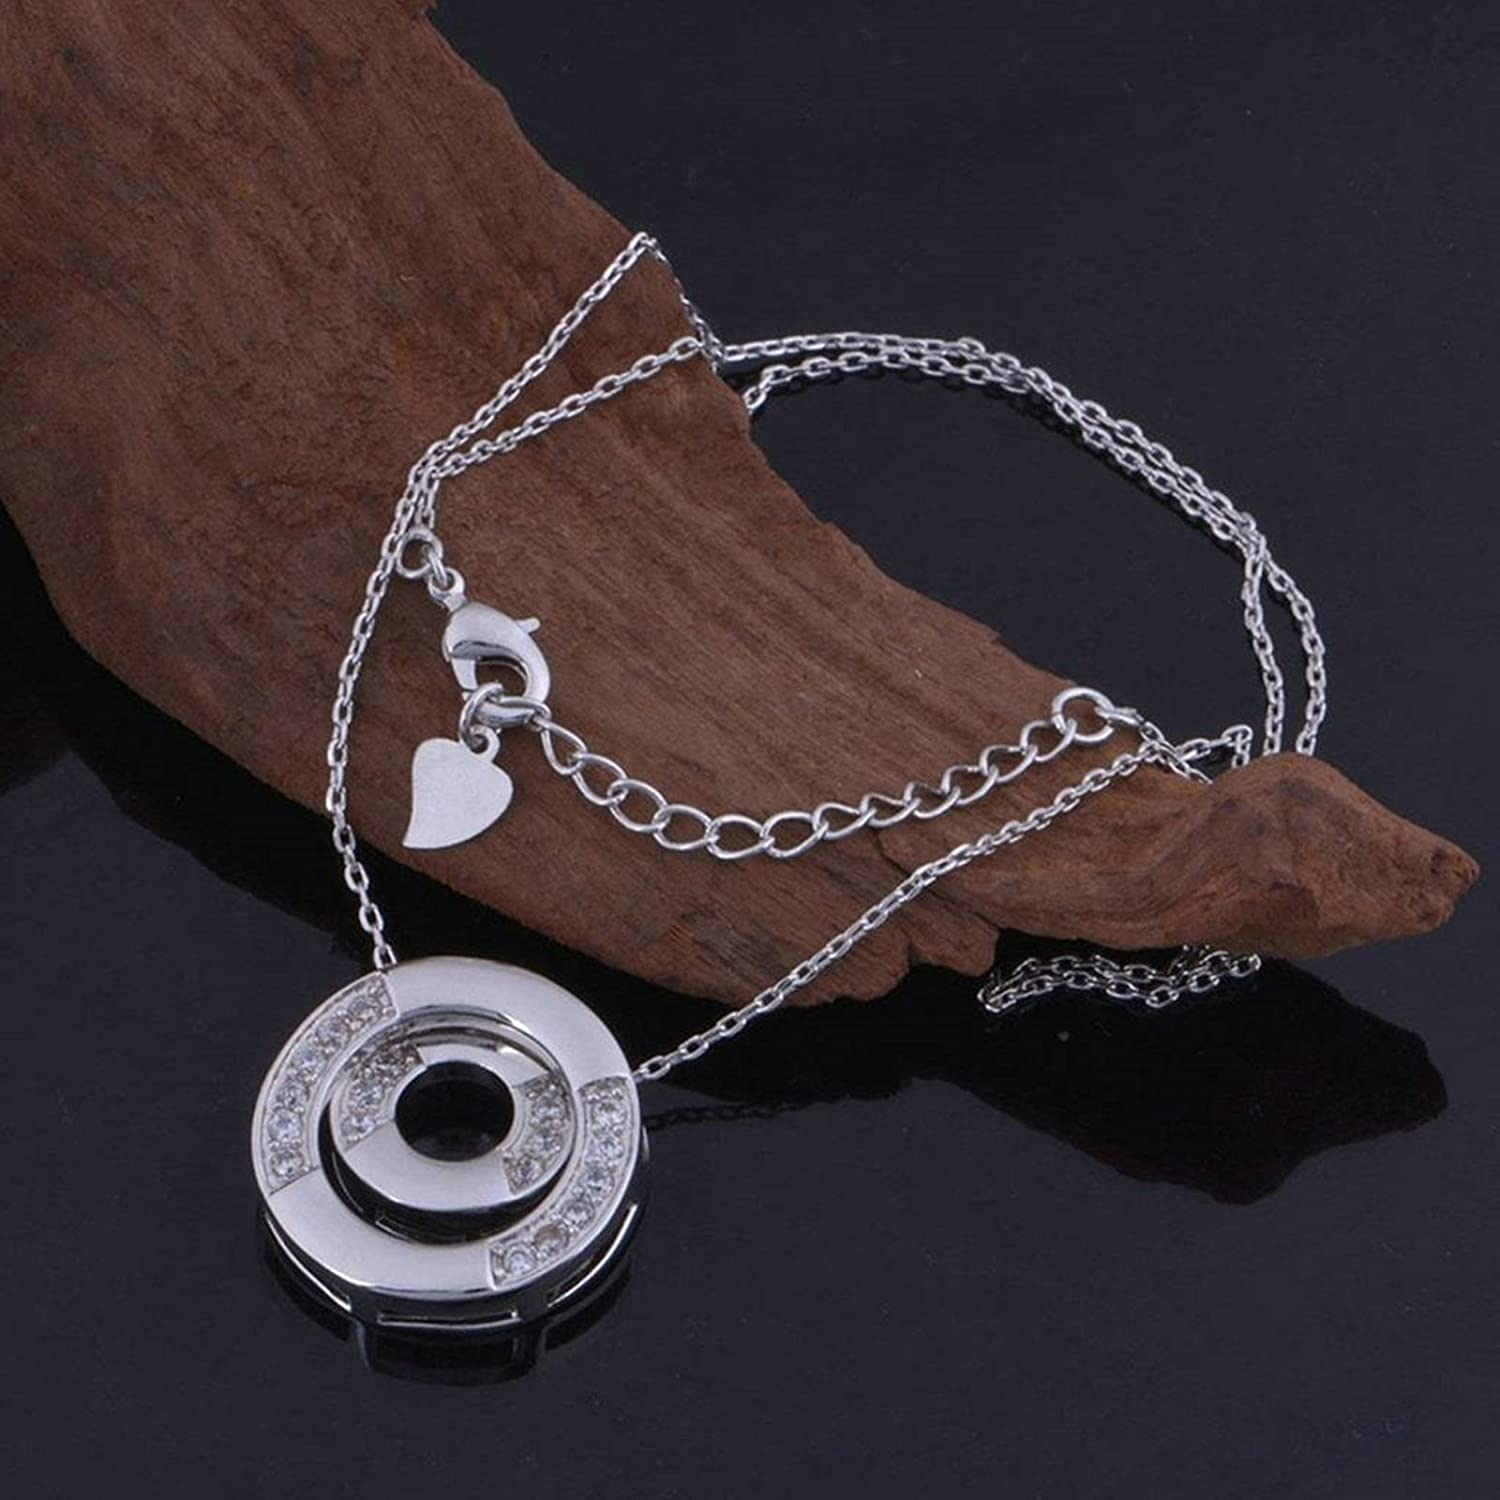 Aokarry Jewelry Silver Plated Round Disc Pendant Cubic Zirconia for Women